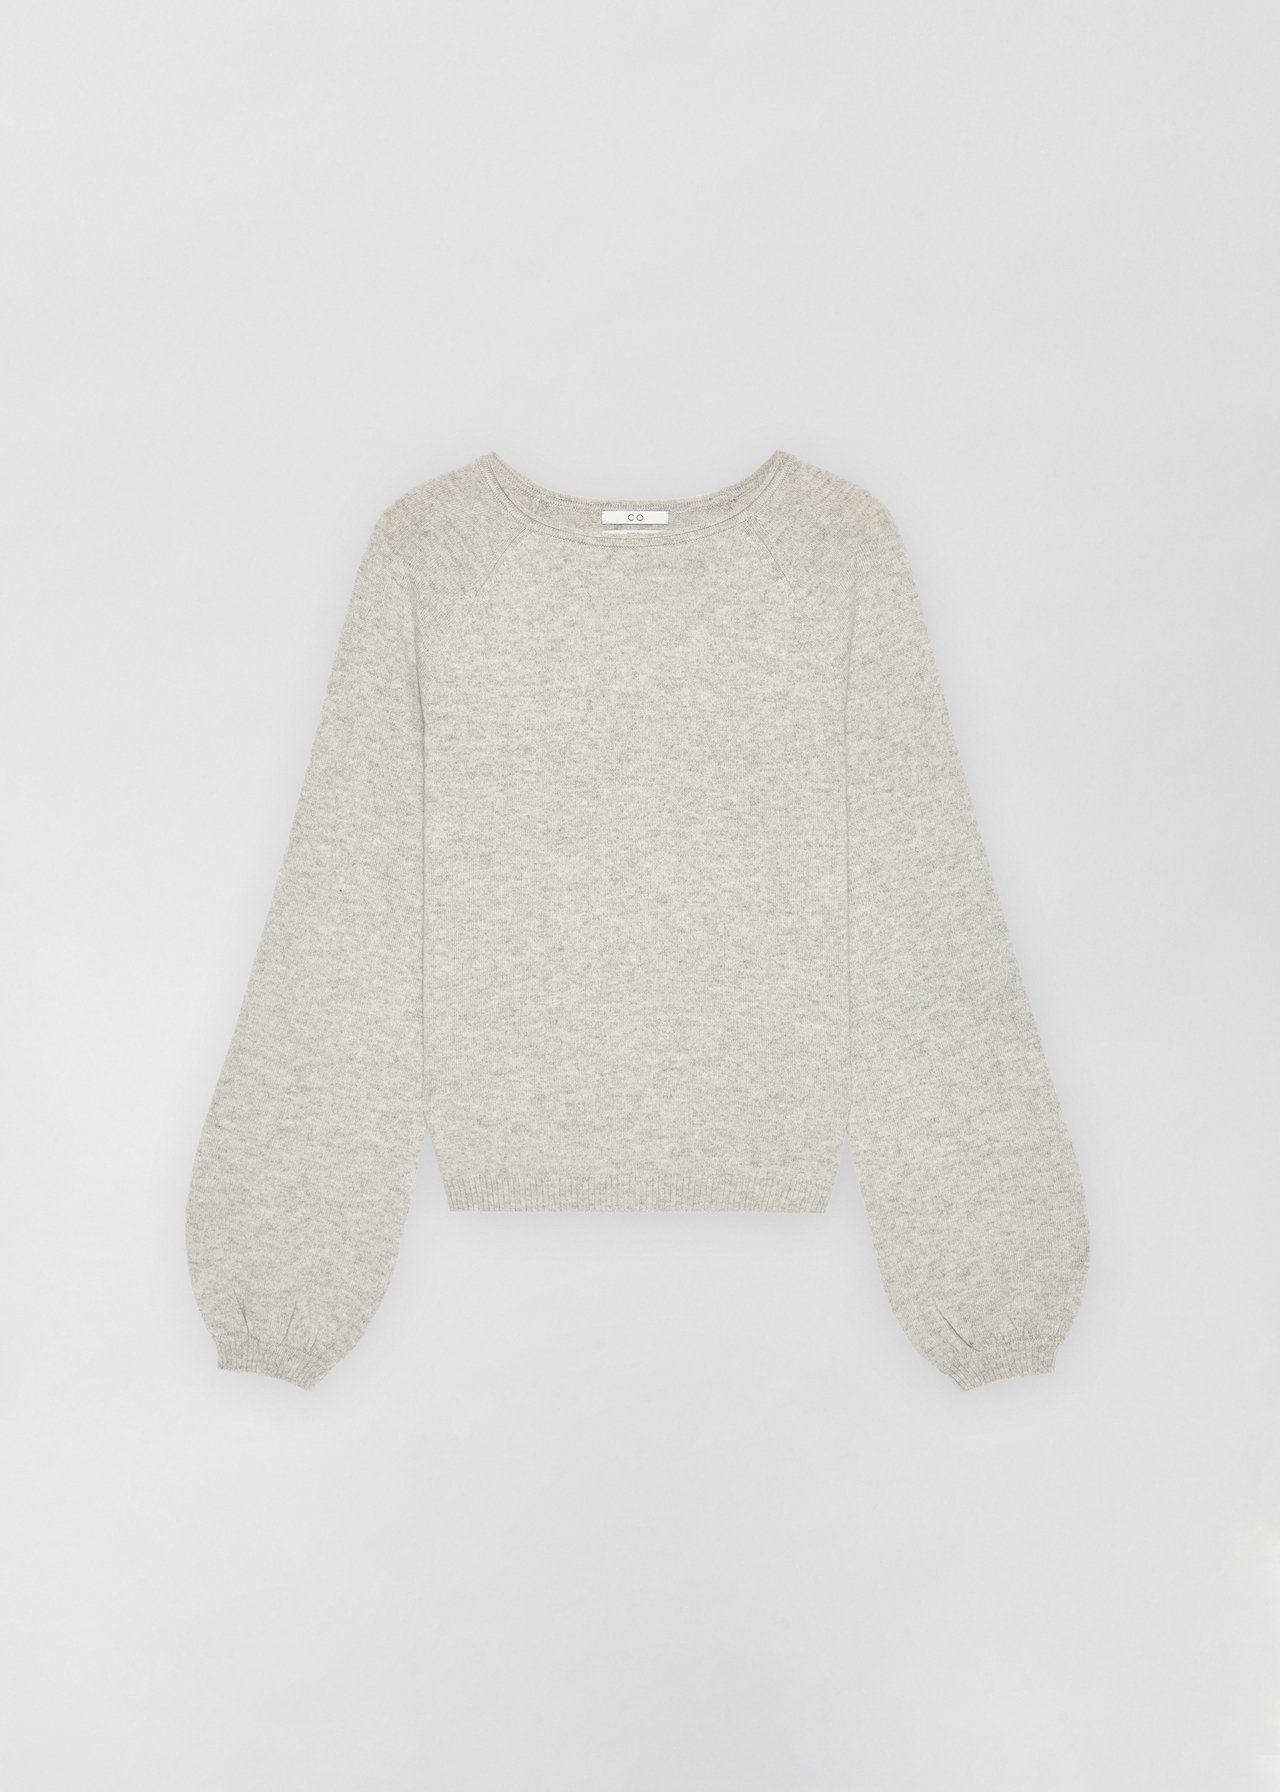 Raglan Peasant Sleeve Sweater - Sand Melange in Light Grey by Co Collections